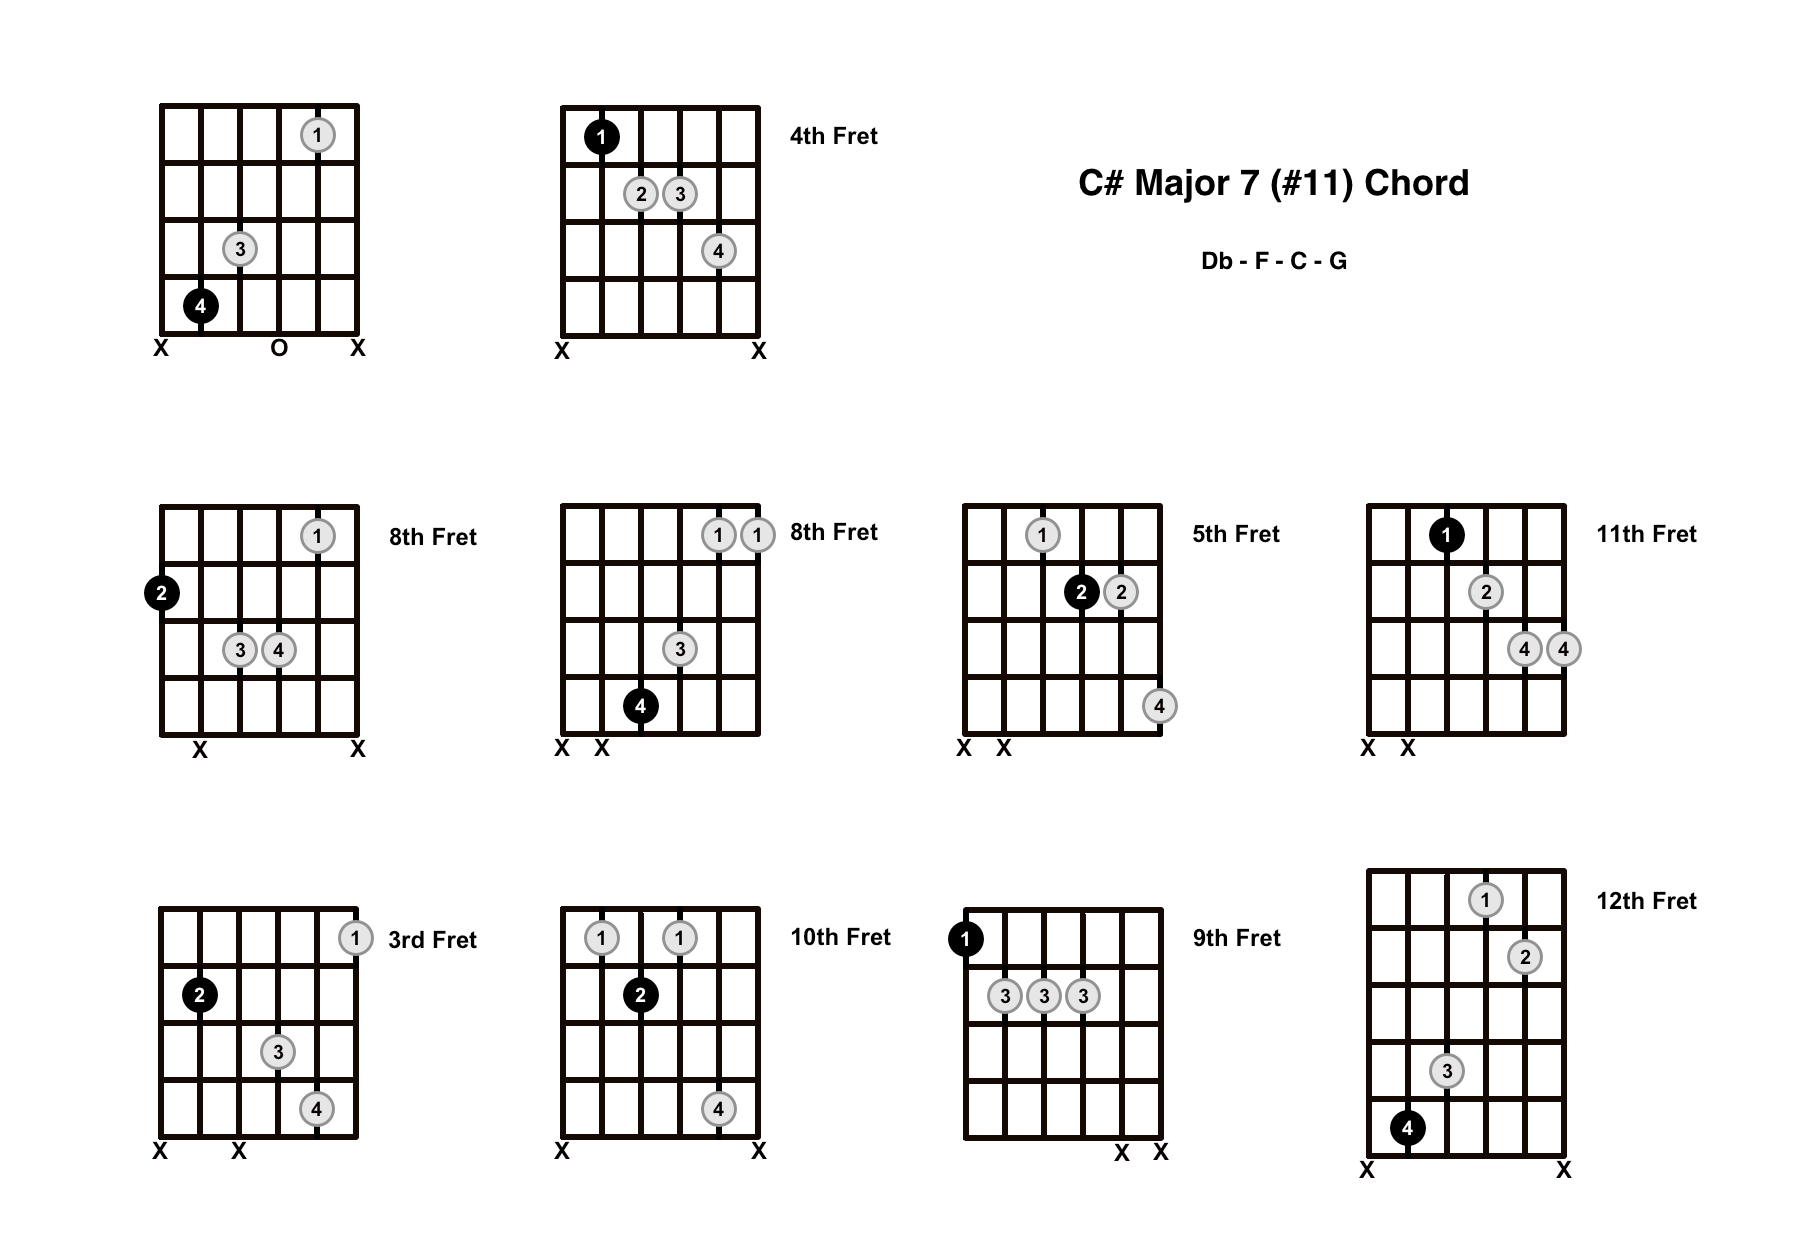 C#maj7#11 Chord On The Guitar (C Sharp Major 7 #11) – Diagrams, Finger Positions and Theory